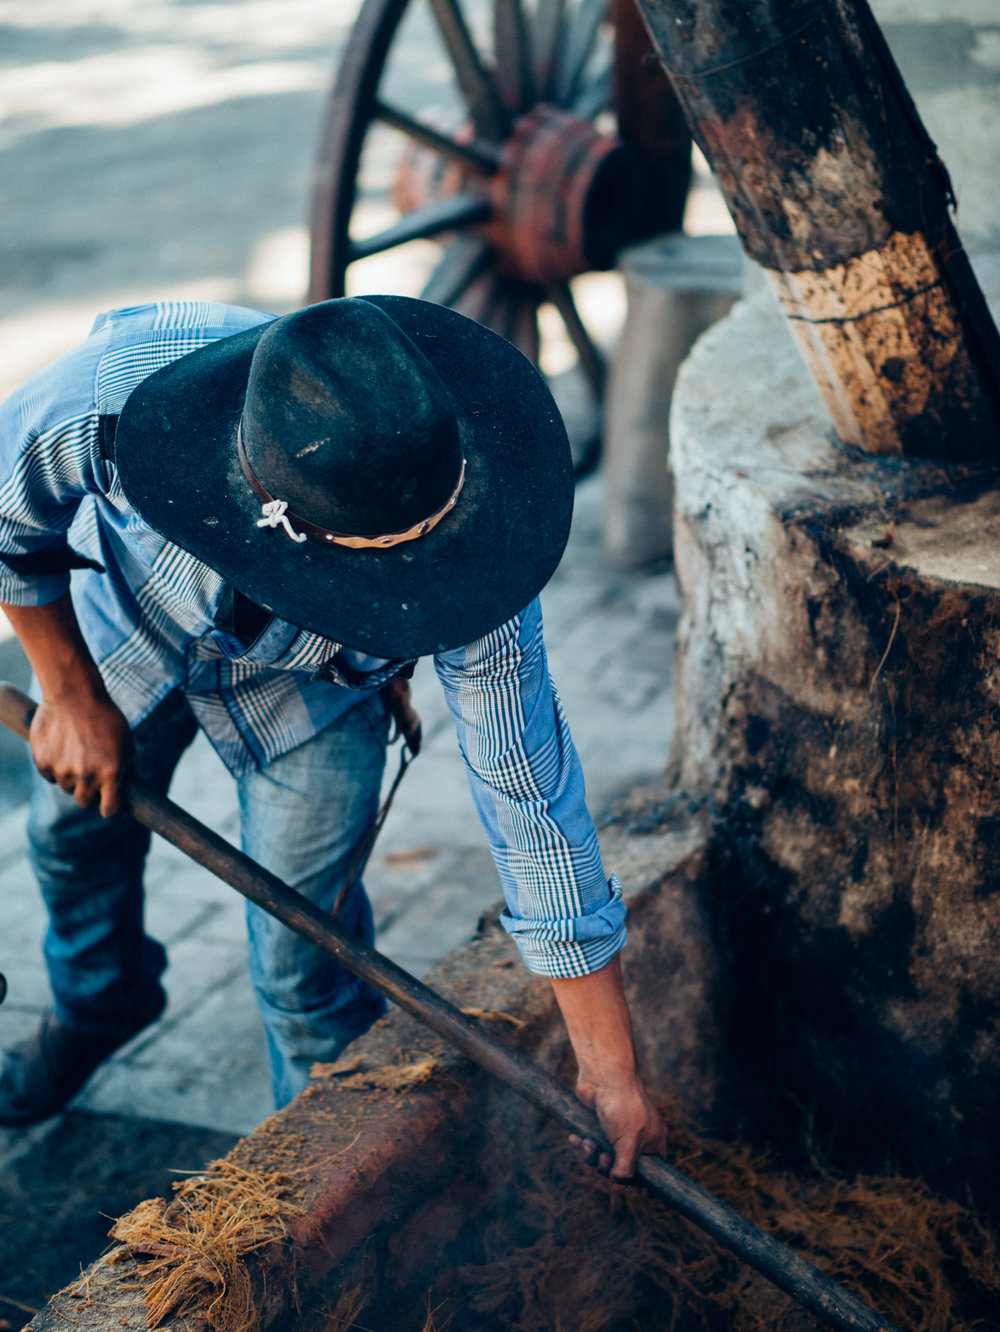 We visited La Costumbre, a Mezcal making still. Here a worker is shoveling steaming hot remnants from previously mashed piñas which will be used to cover the new piñas in the roasting pit.